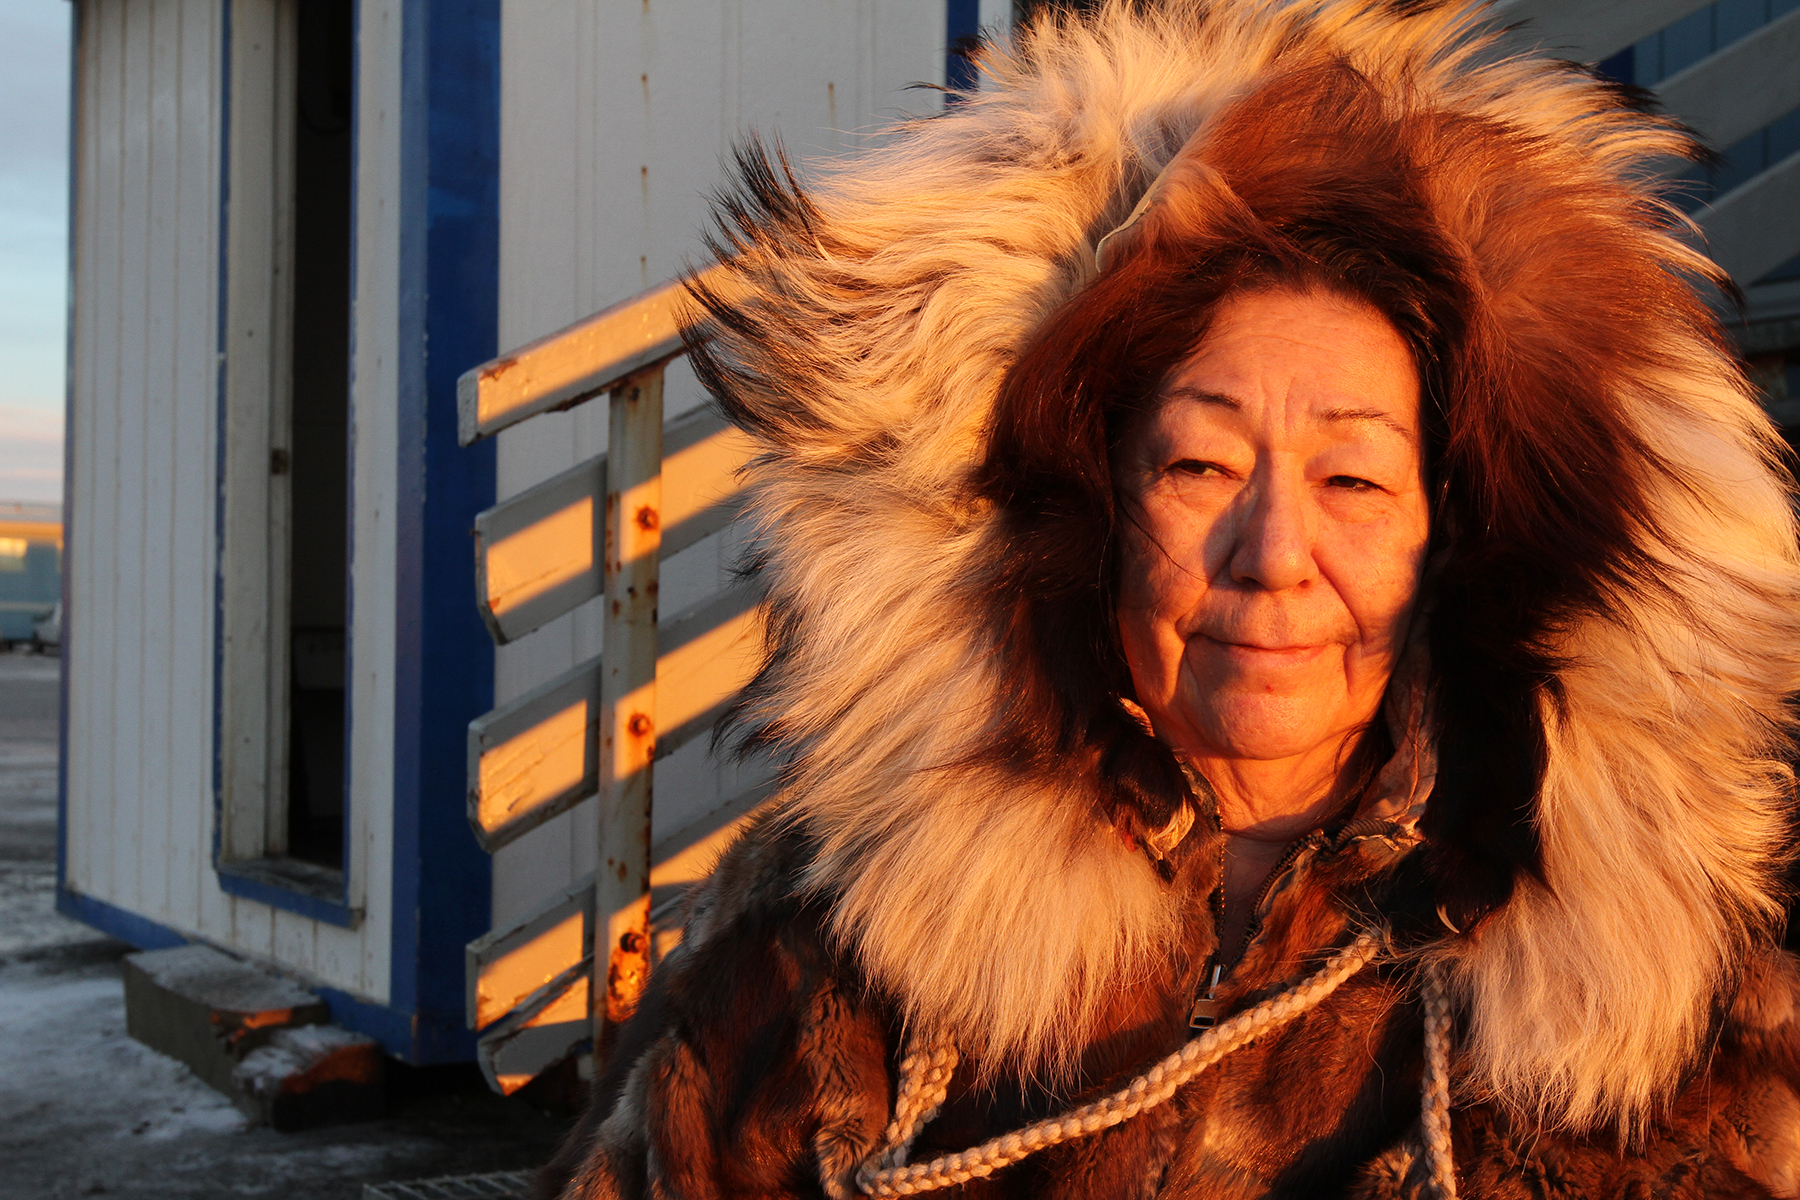 Ruth Aiken slipped on the ice and broke her wrist,but insisted on taking a photo while wearing the fur parka she sewed with her mother before going to the hospital. For more serious issues, travel to Anchorage or Fairbanks is common.